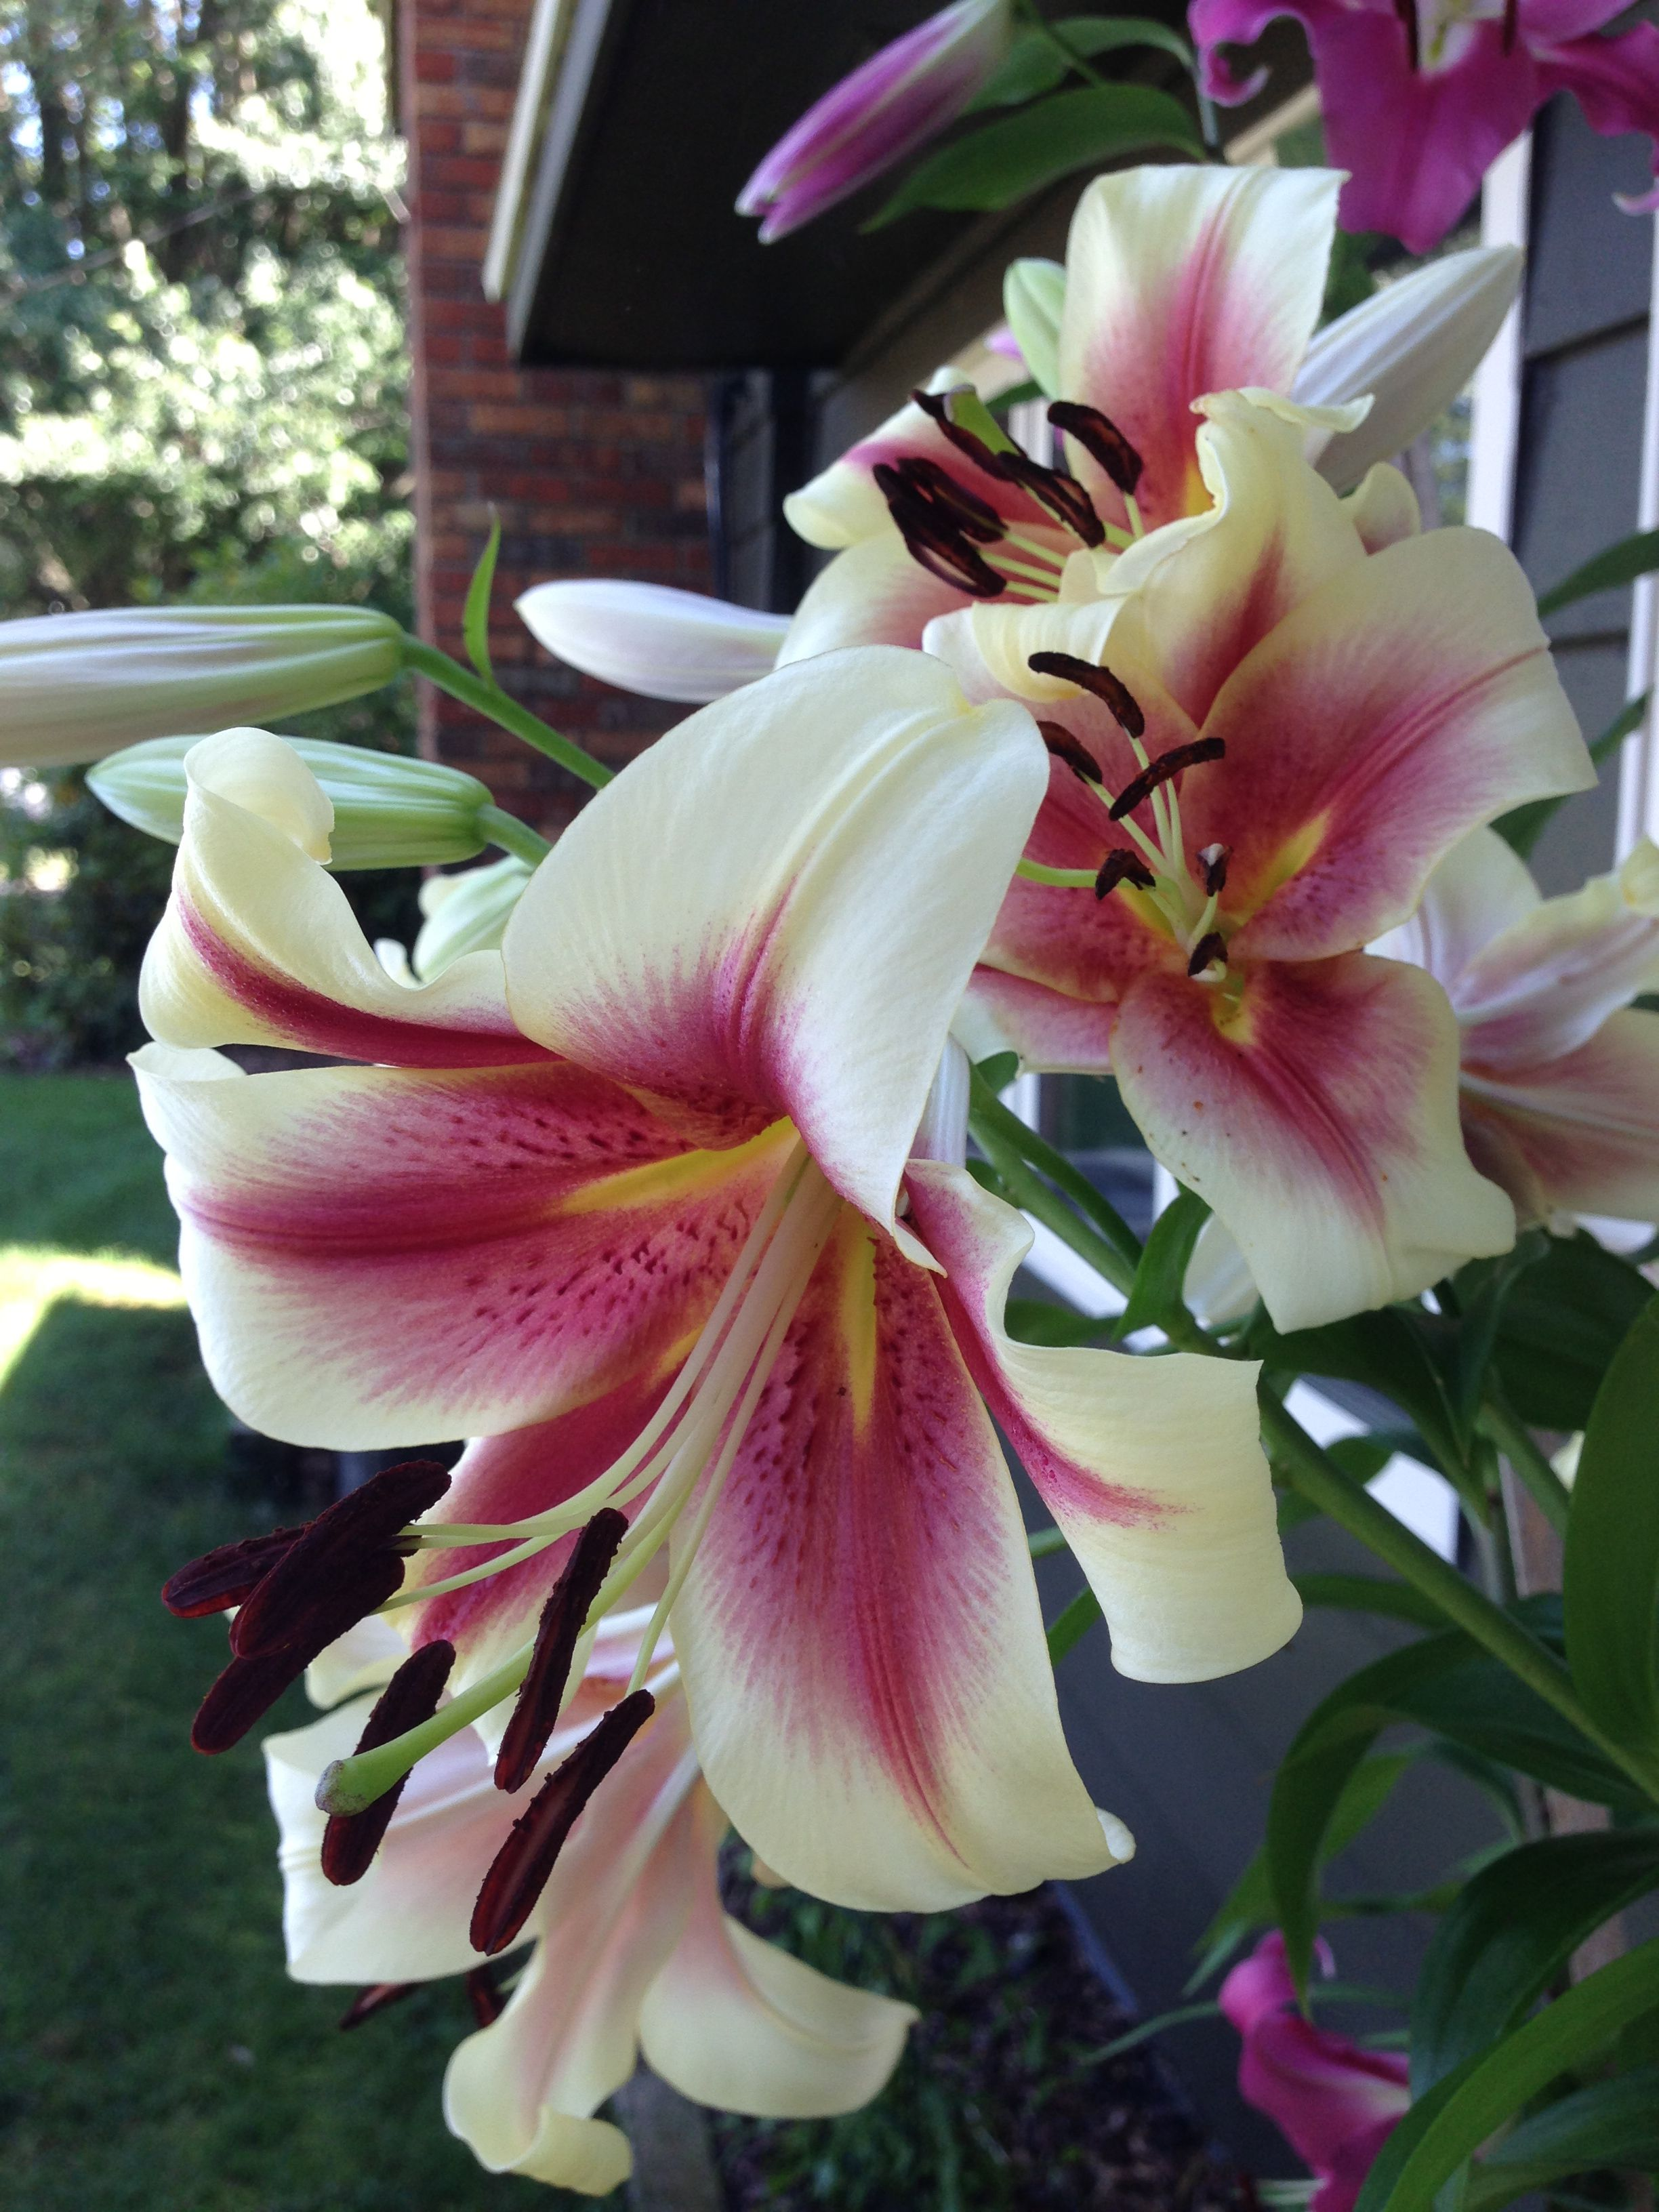 It's lily season again !  July is always full of these fragrant flowers!